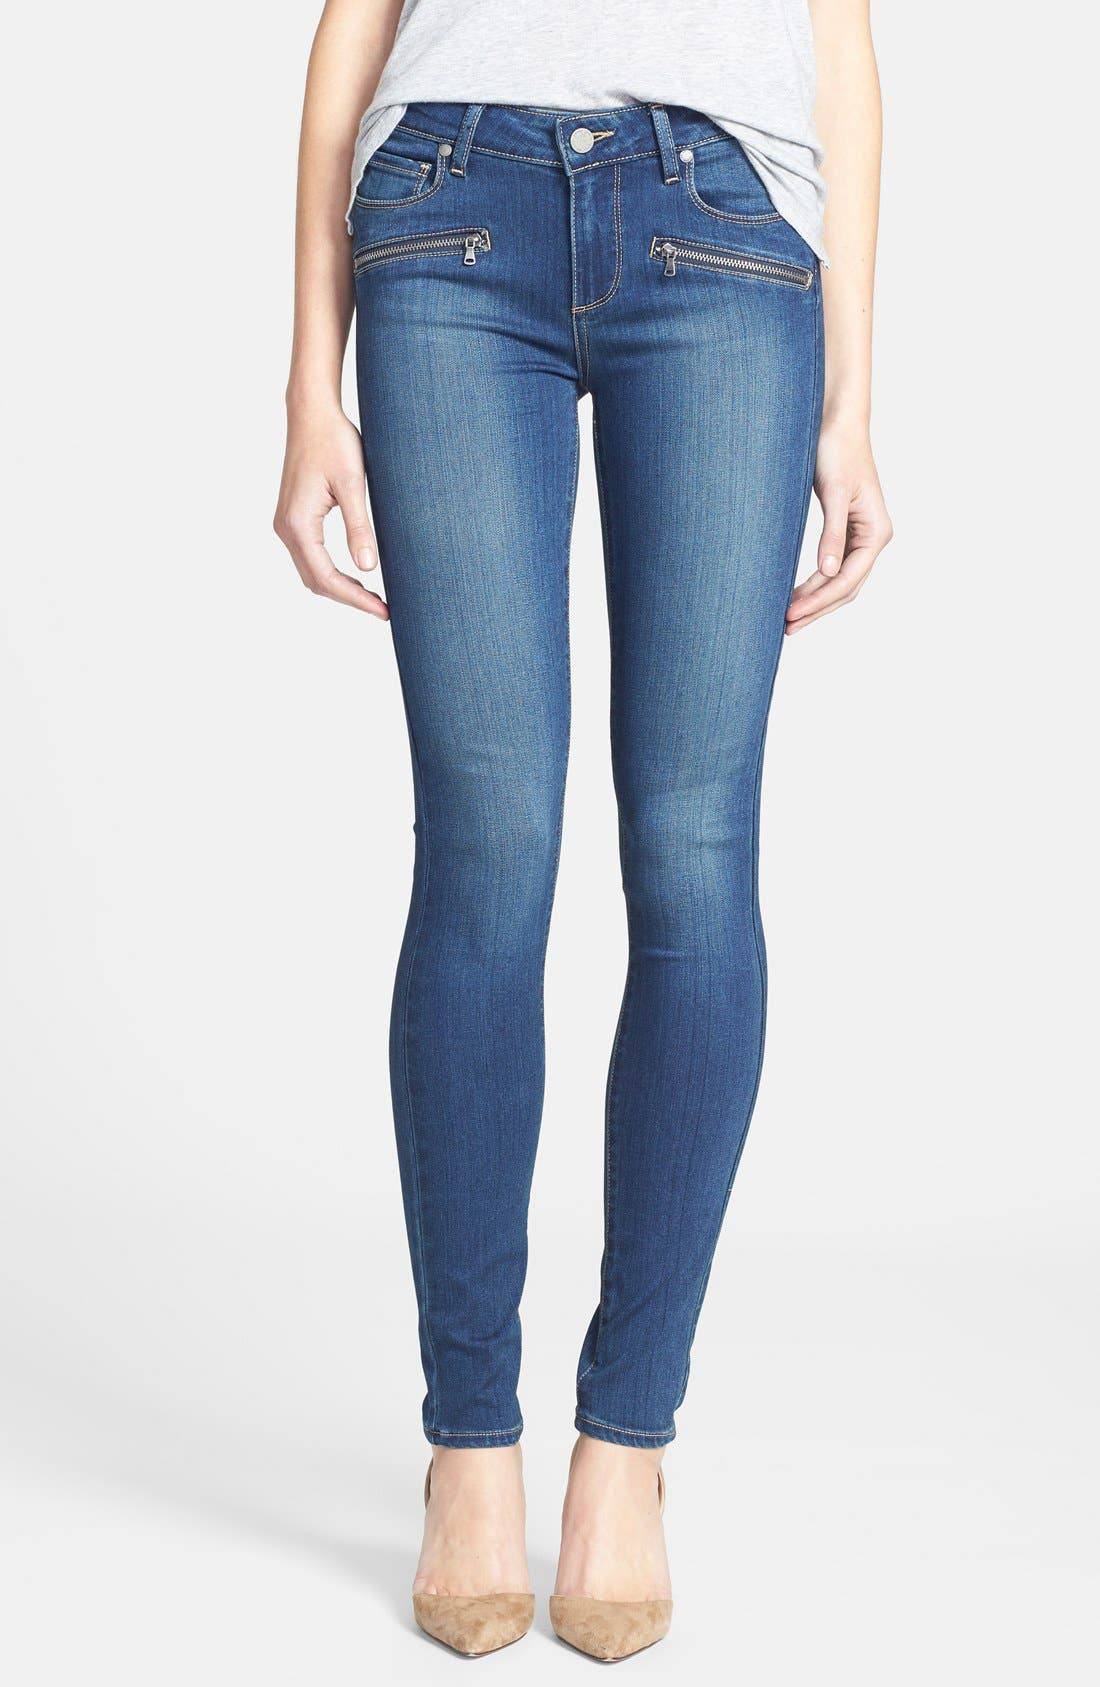 Alternate Image 1 Selected - Paige Denim 'Indio' Zip Detail Ultra Skinny Jeans (Easton No Whiskers)